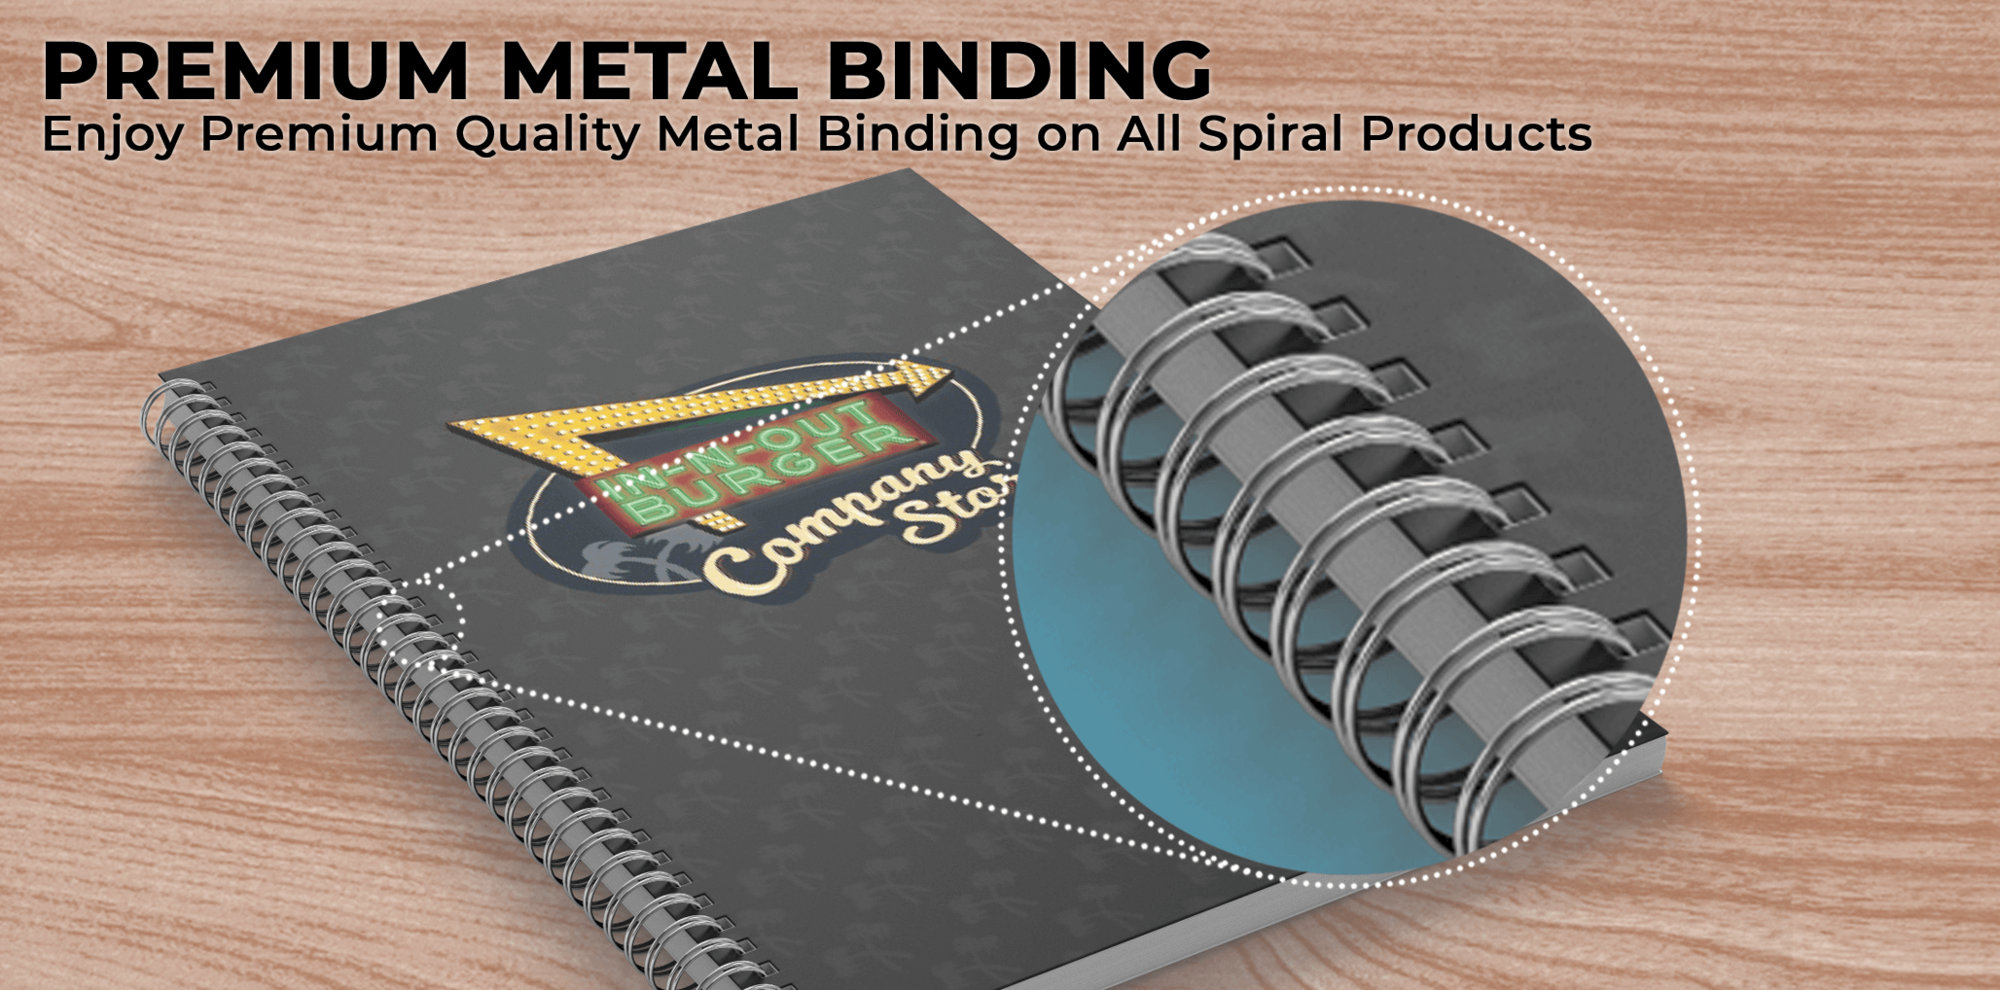 https://printpps.com/images/products_gallery_images/Banner_Spiral_FeatBinding74.png